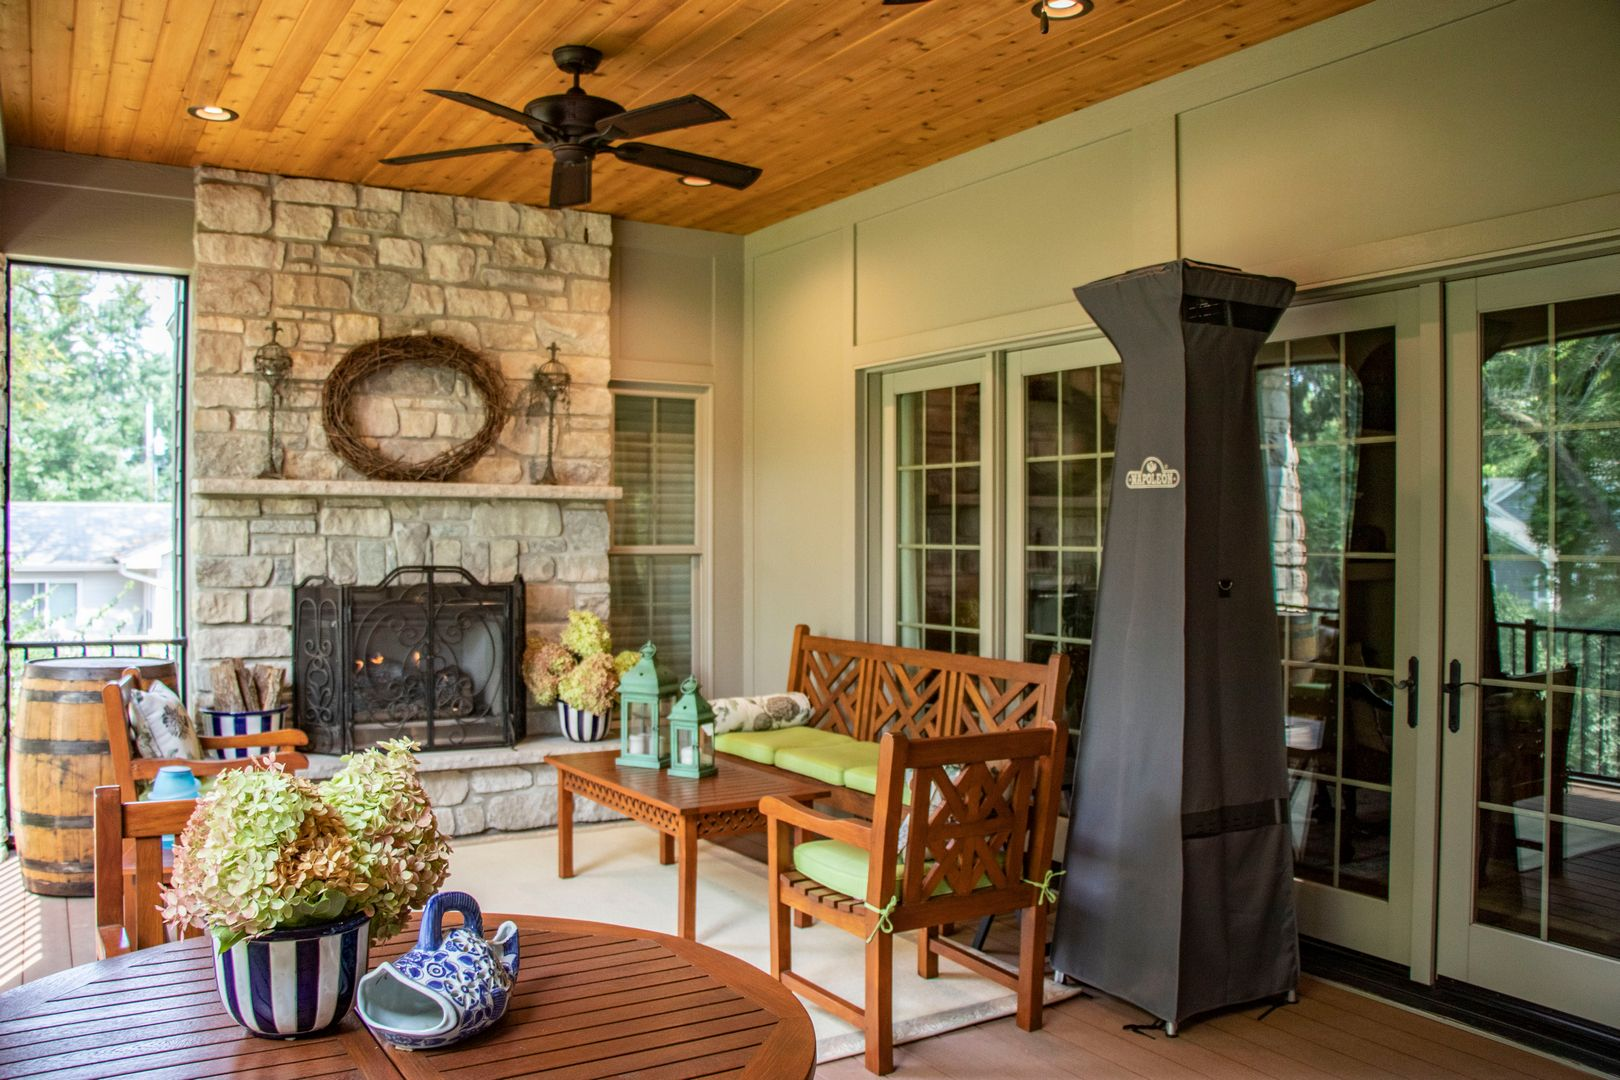 Fireplace and patio/deck heater